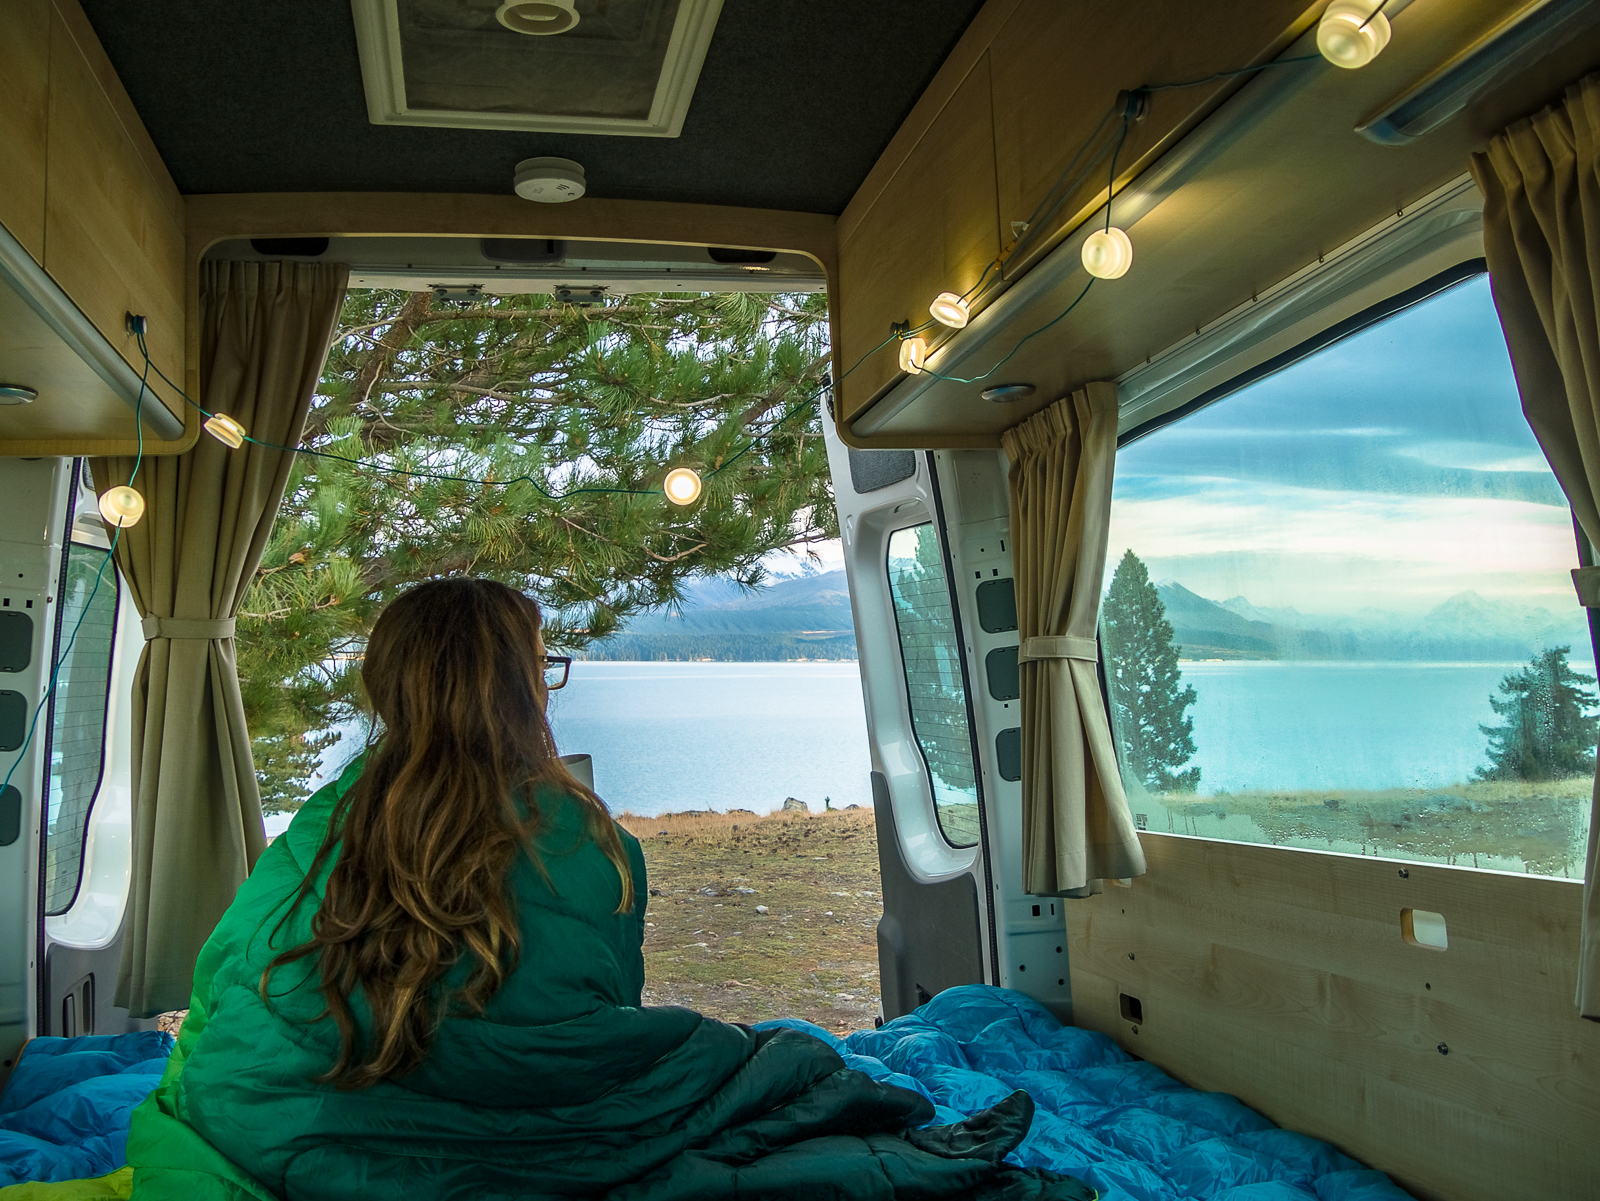 Inside camper van in New Zealand